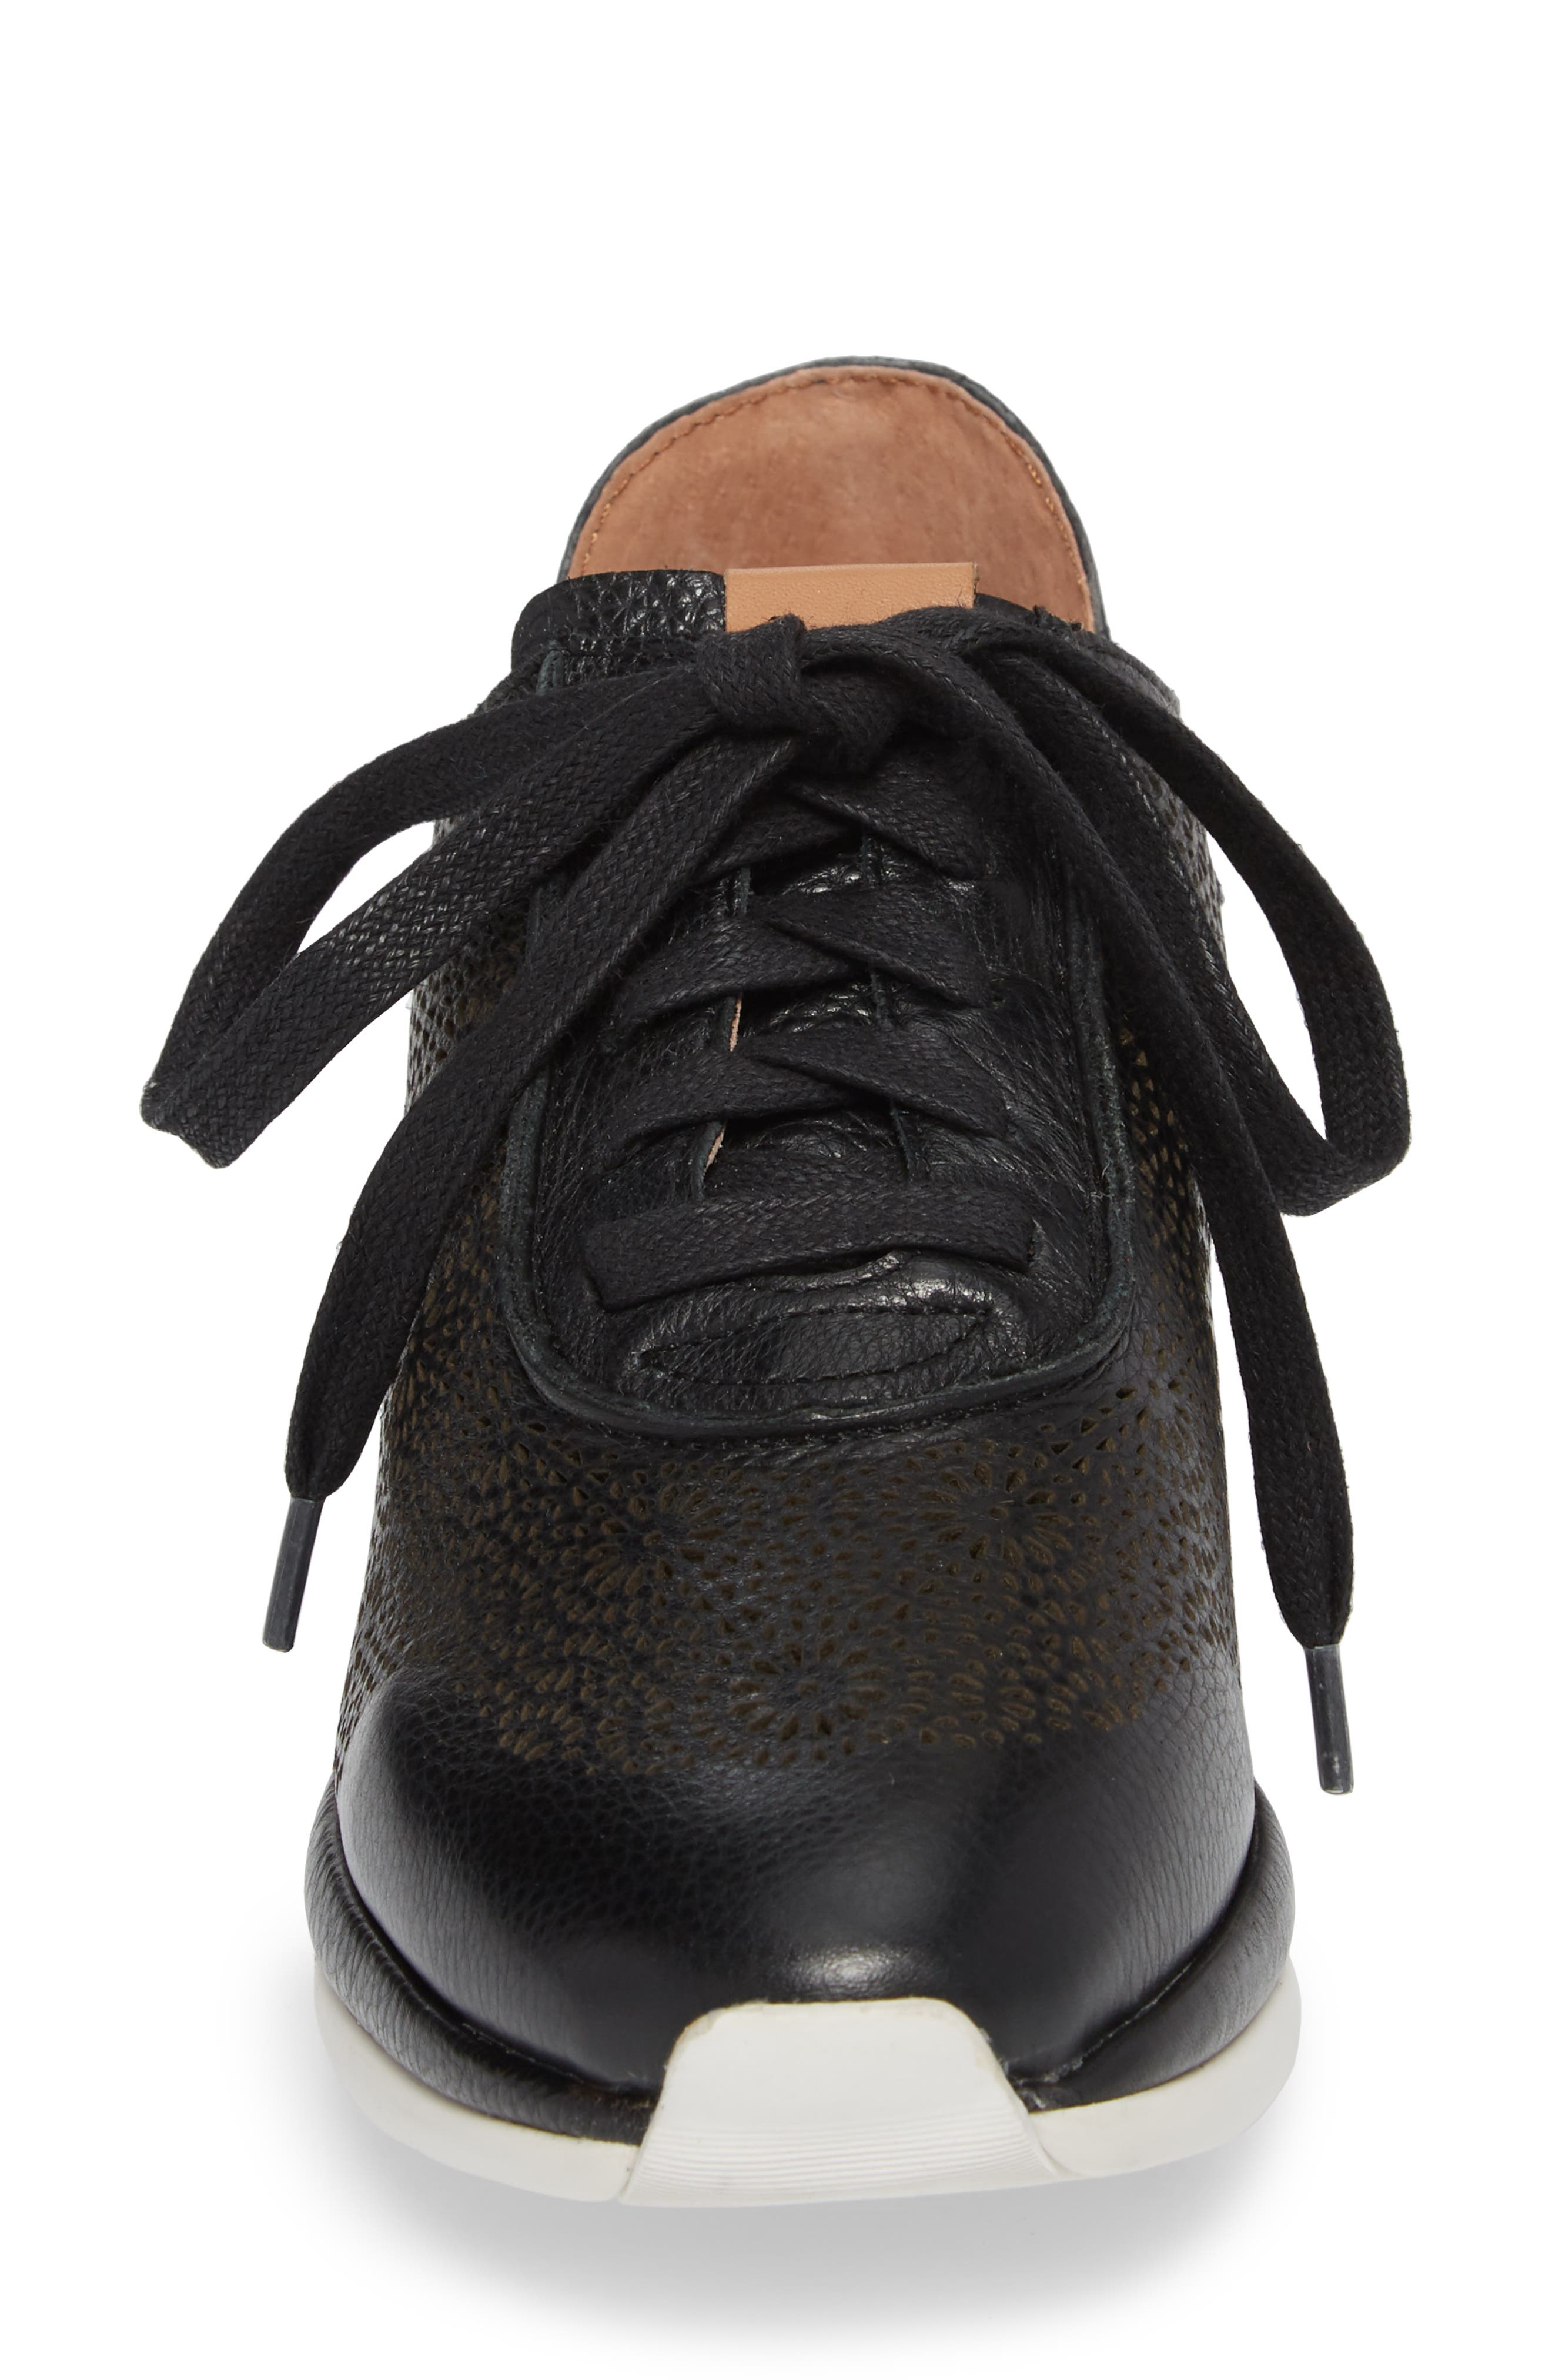 GENTLE SOULS BY KENNETH COLE, Raina II Sneaker, Alternate thumbnail 4, color, BLACK LEATHER